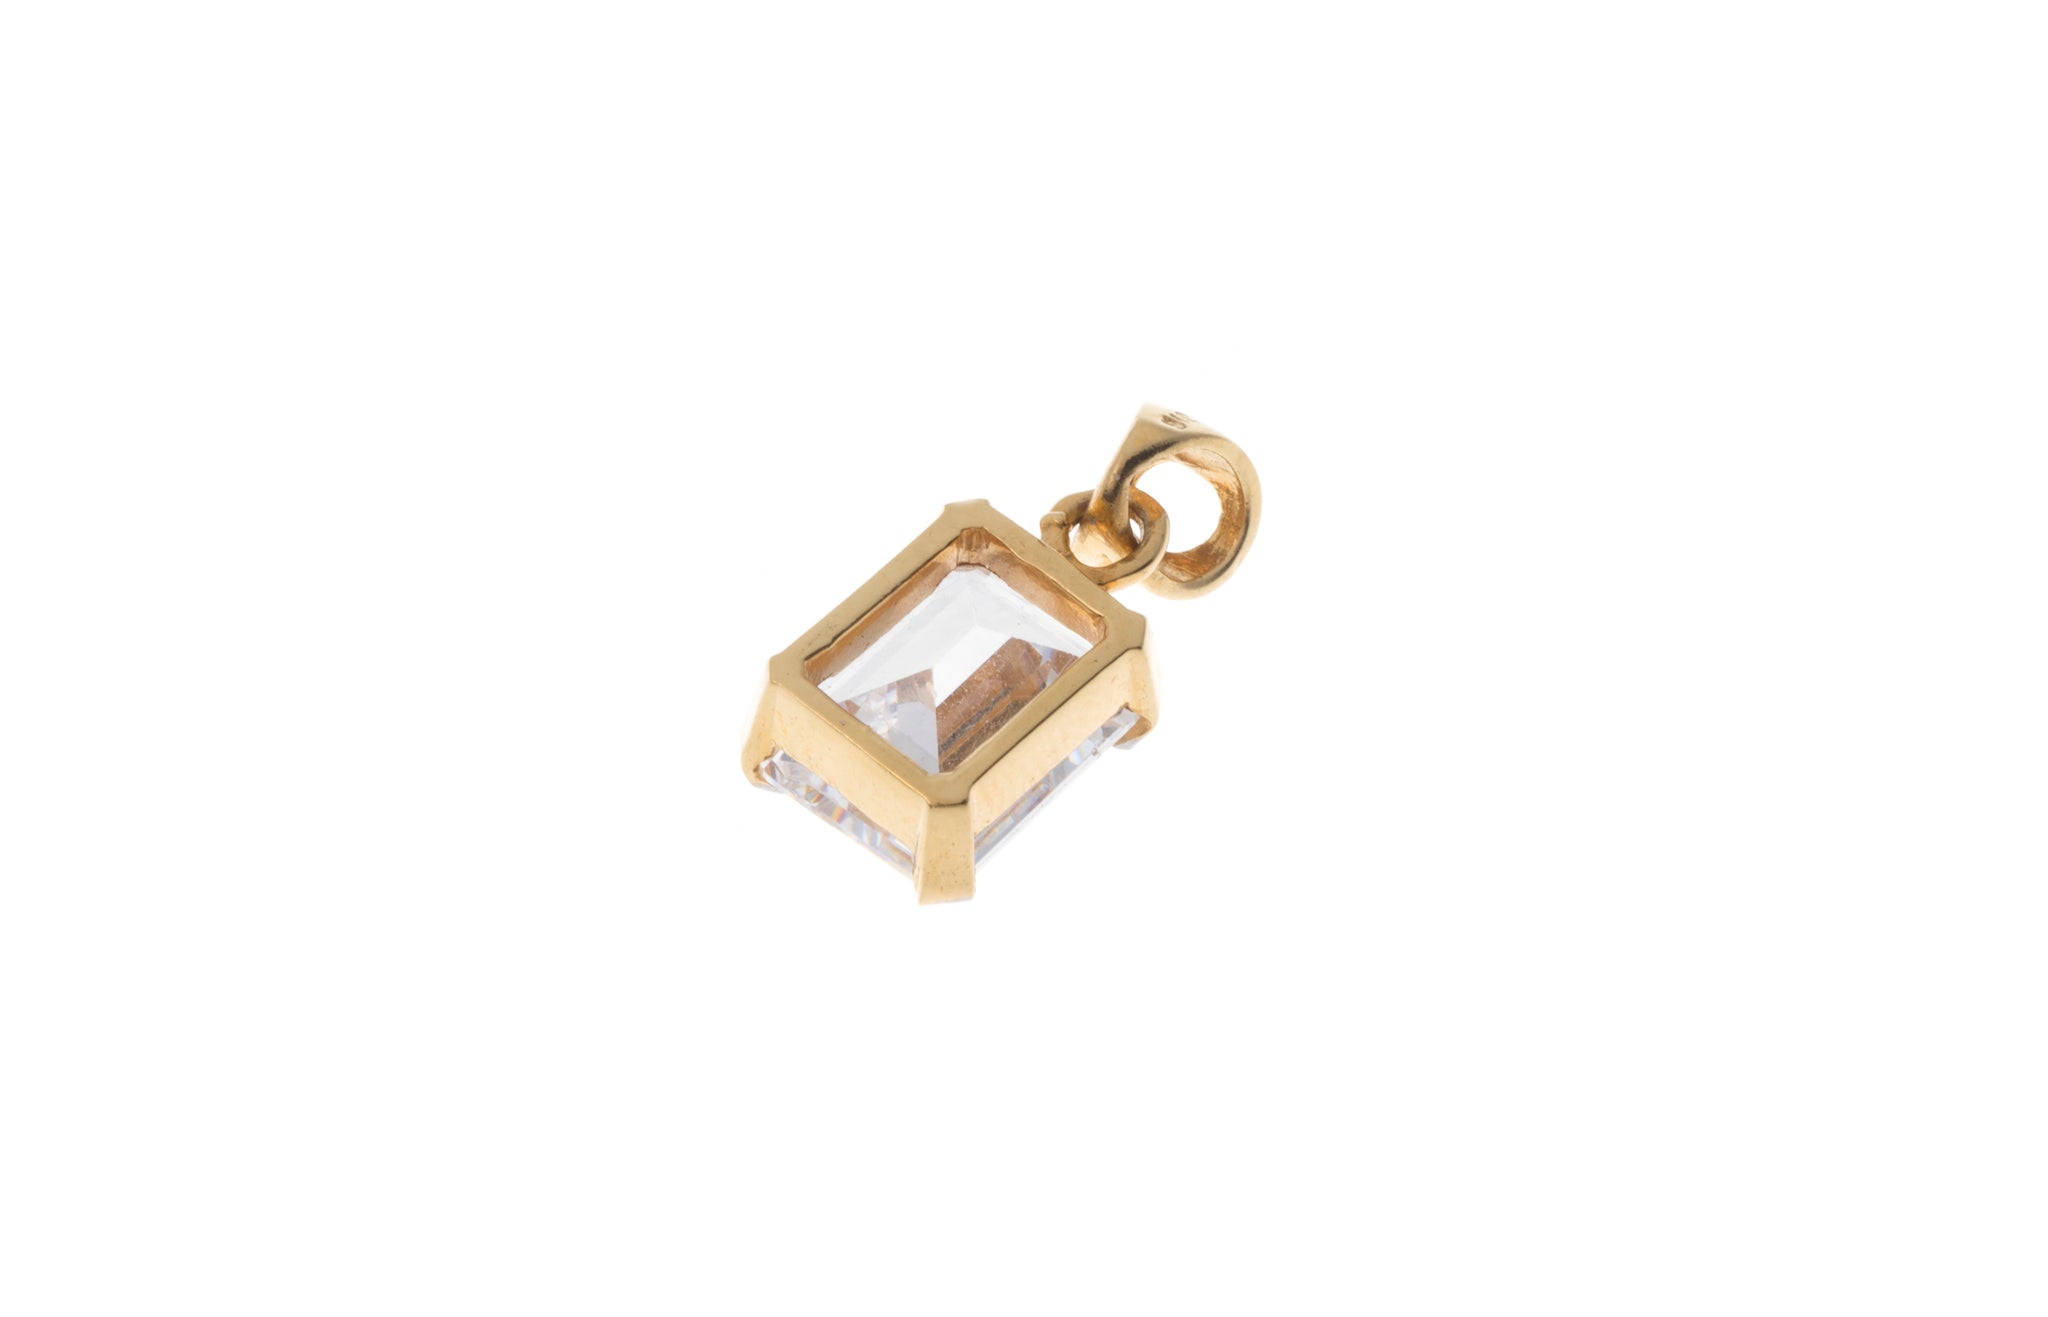 22ct Gold Emerald Cut Cubic Zirconia Pendant PS13037